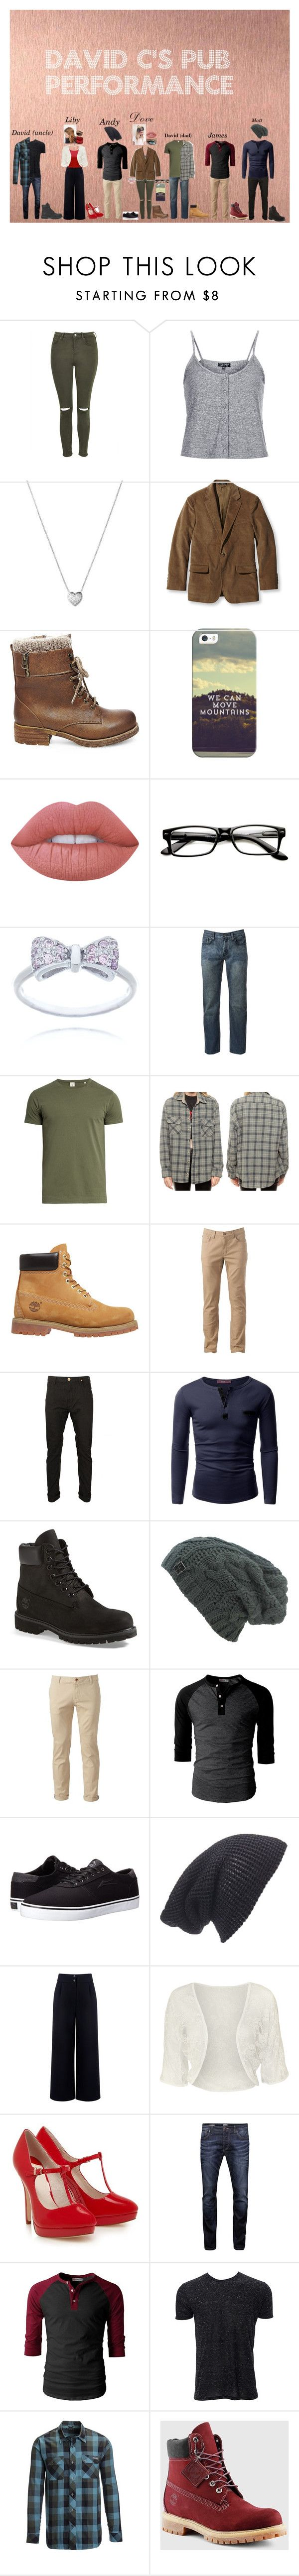 """""""Pub Outfits"""" by directioner-girly on Polyvore featuring Topshop, Links of London, L.L.Bean, Steve Madden, Casetify, Lime Crime, Urban Pipeline, Sørensen, Timberland and Doublju"""